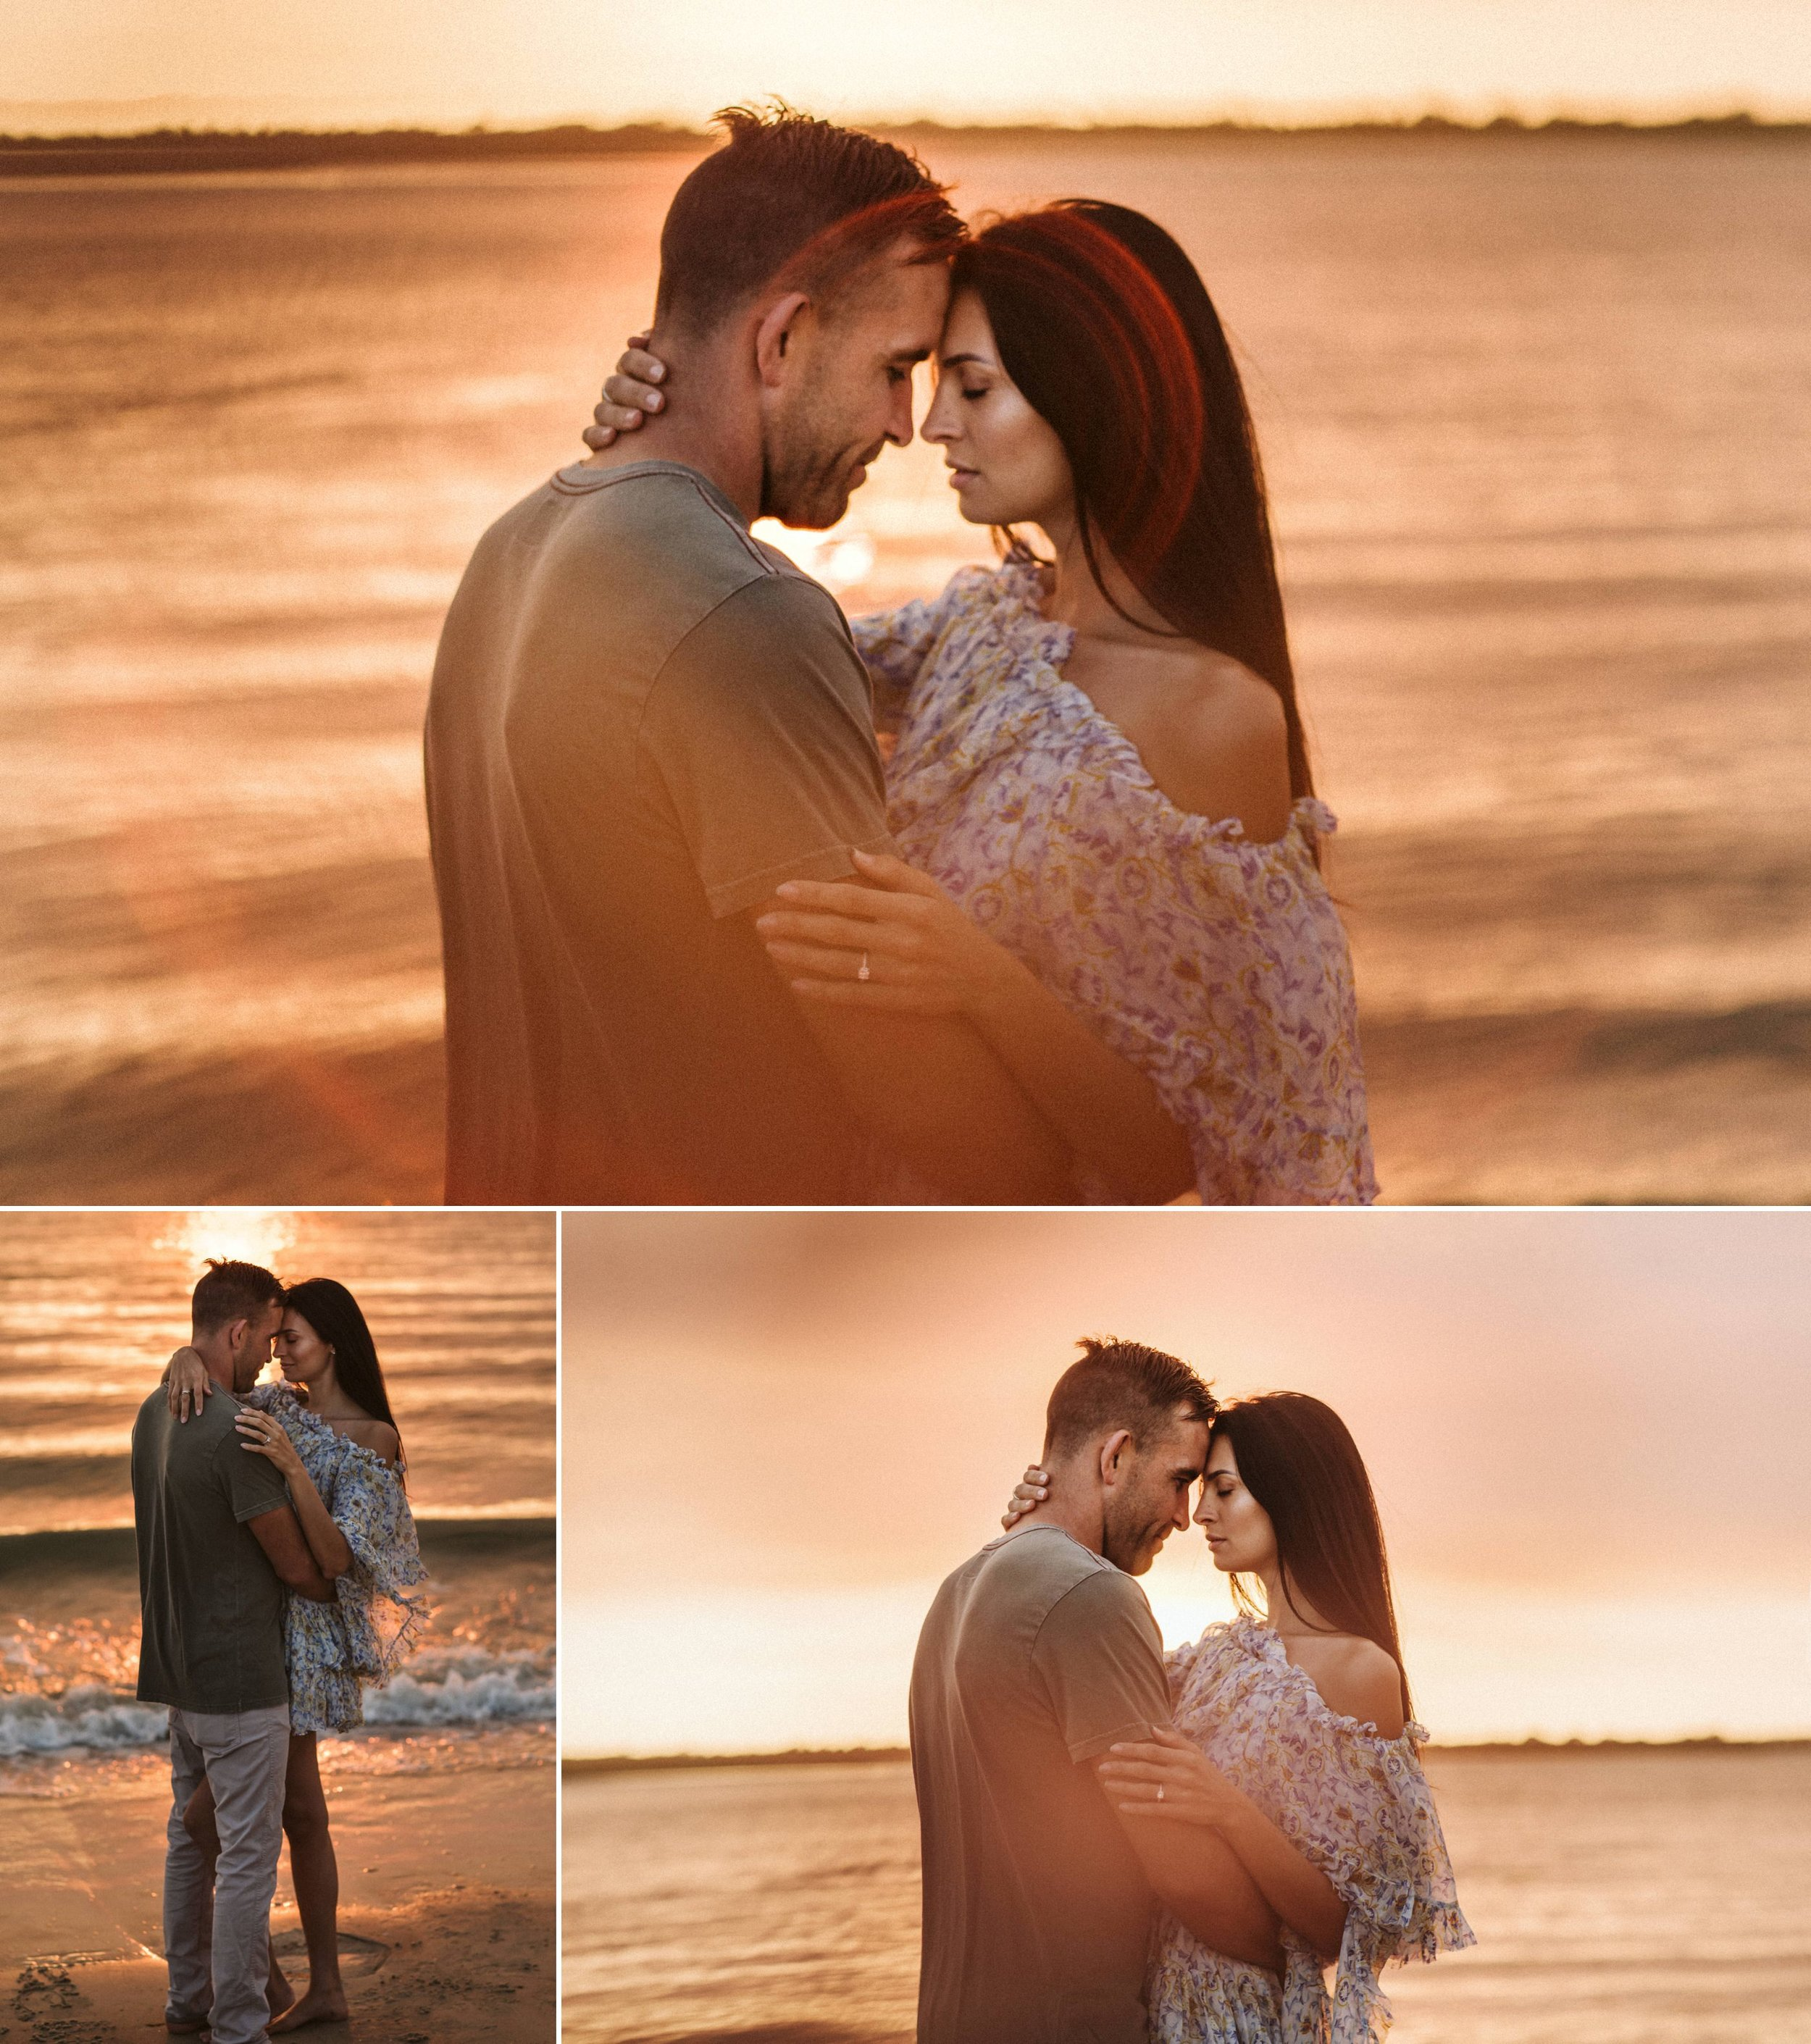 Adventure Brushfire sunset beach engagement- Gabriella + Chad- Shaina DeCiryan photography8.jpg